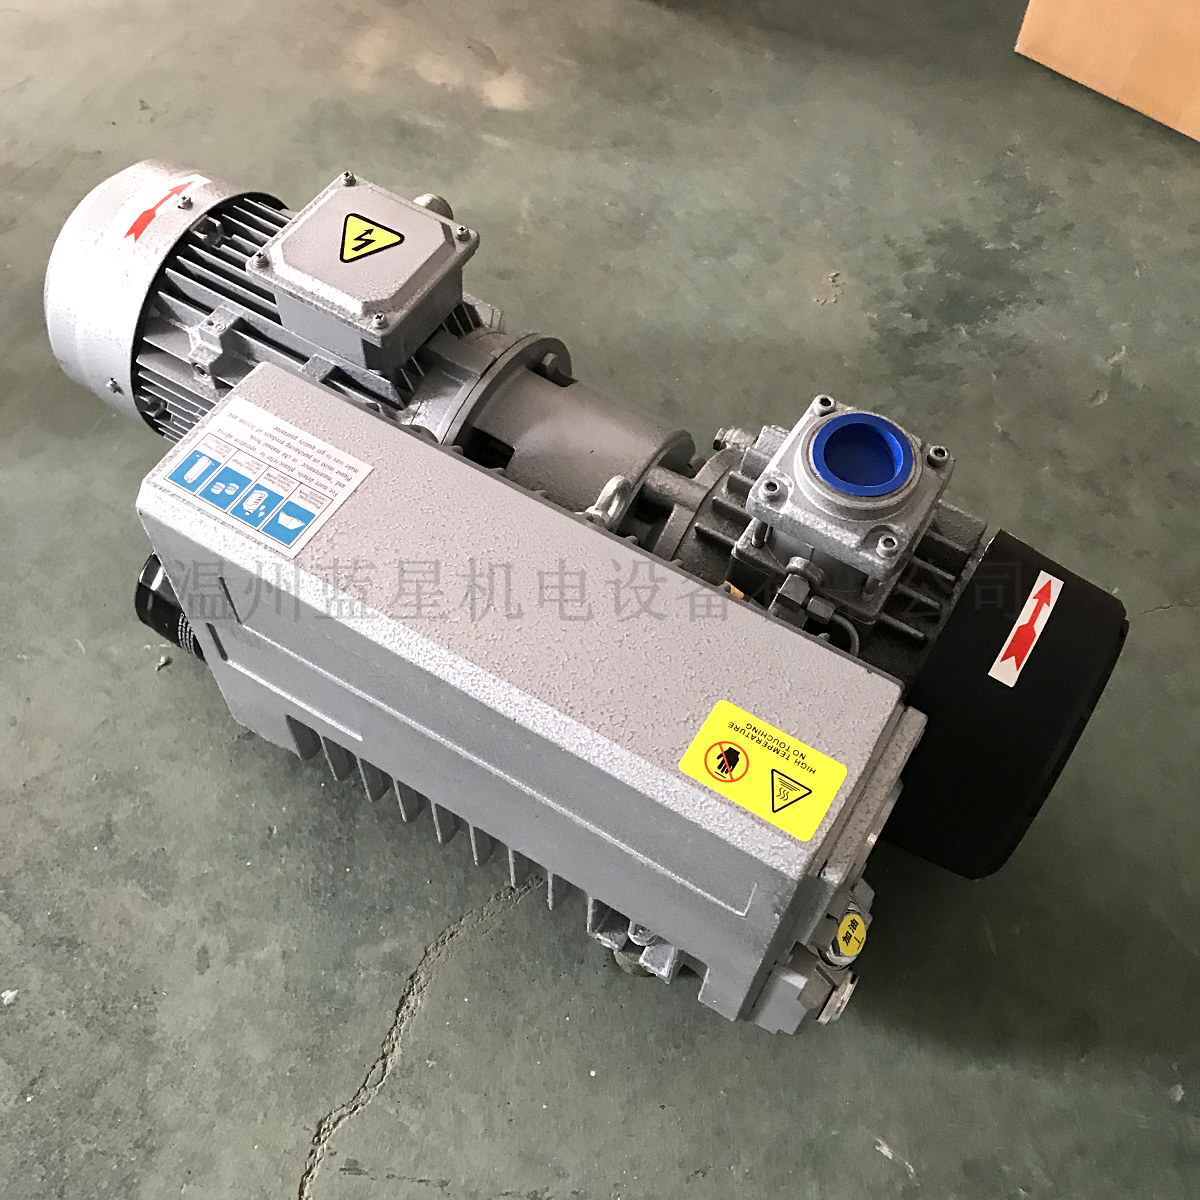 XD-040 Rotary Vane Vacuum Pump Vacuum Packaging Machine Vacuum Pump Vacuum Pump (durable, 40m3 / H)  200PA  No Oil